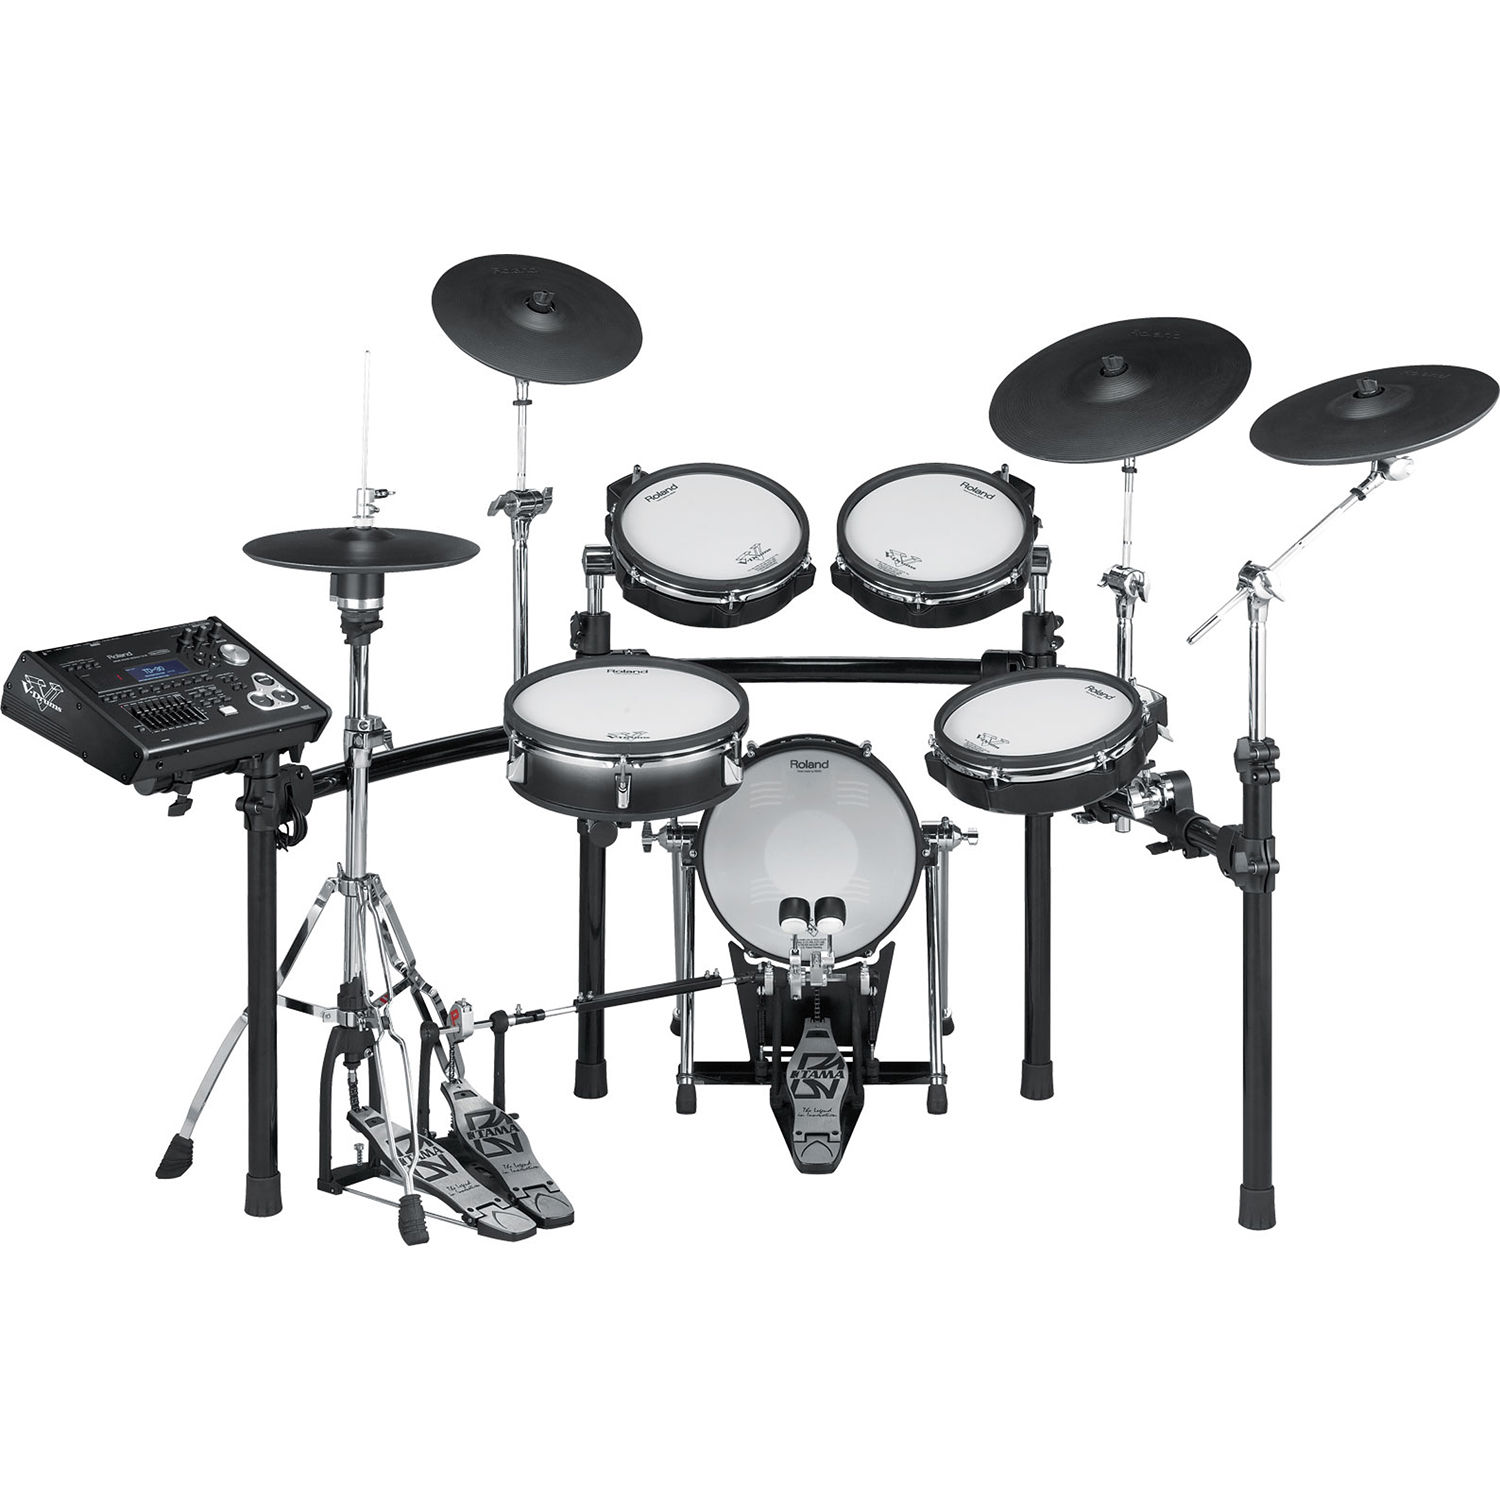 Roland TD 30K V Pro Electronic Drum Set with MDS 50K30 TD 30K S Shown with Optional Equipment